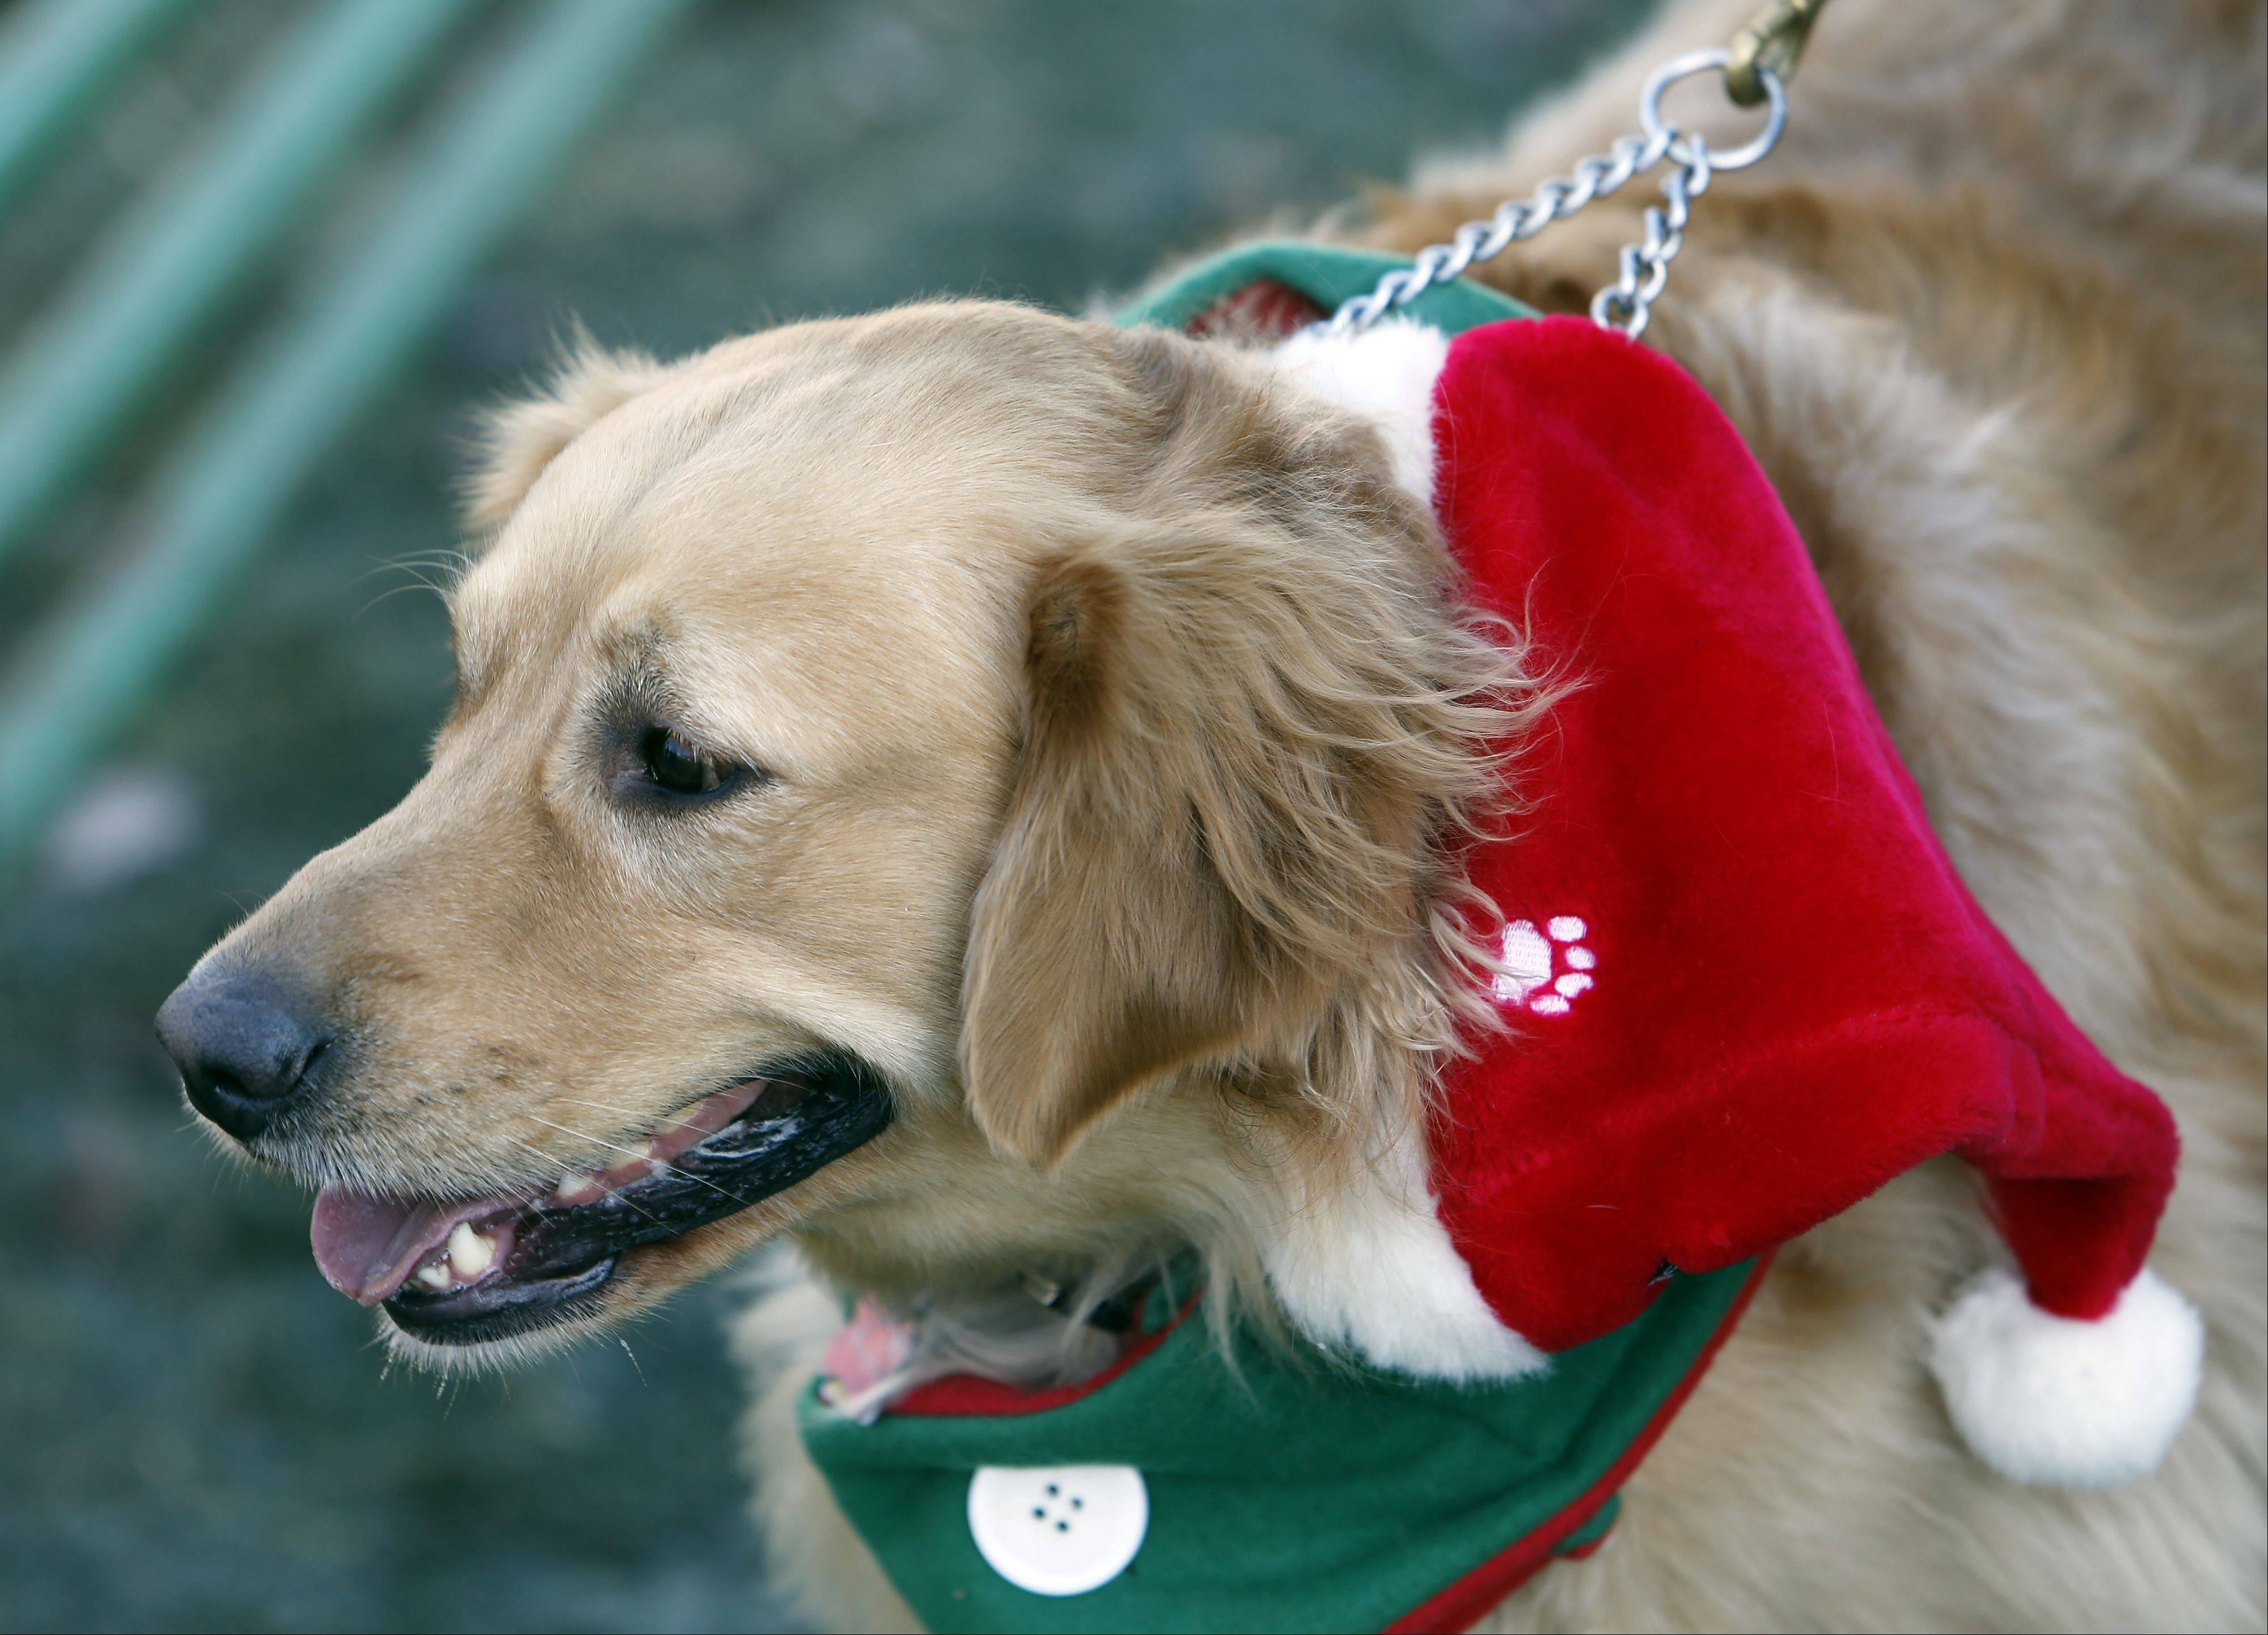 Charlotte, a golden retriever, sported Christmas gear during Dickens in Dundee at Grafelman Park Saturday in West Dundee.